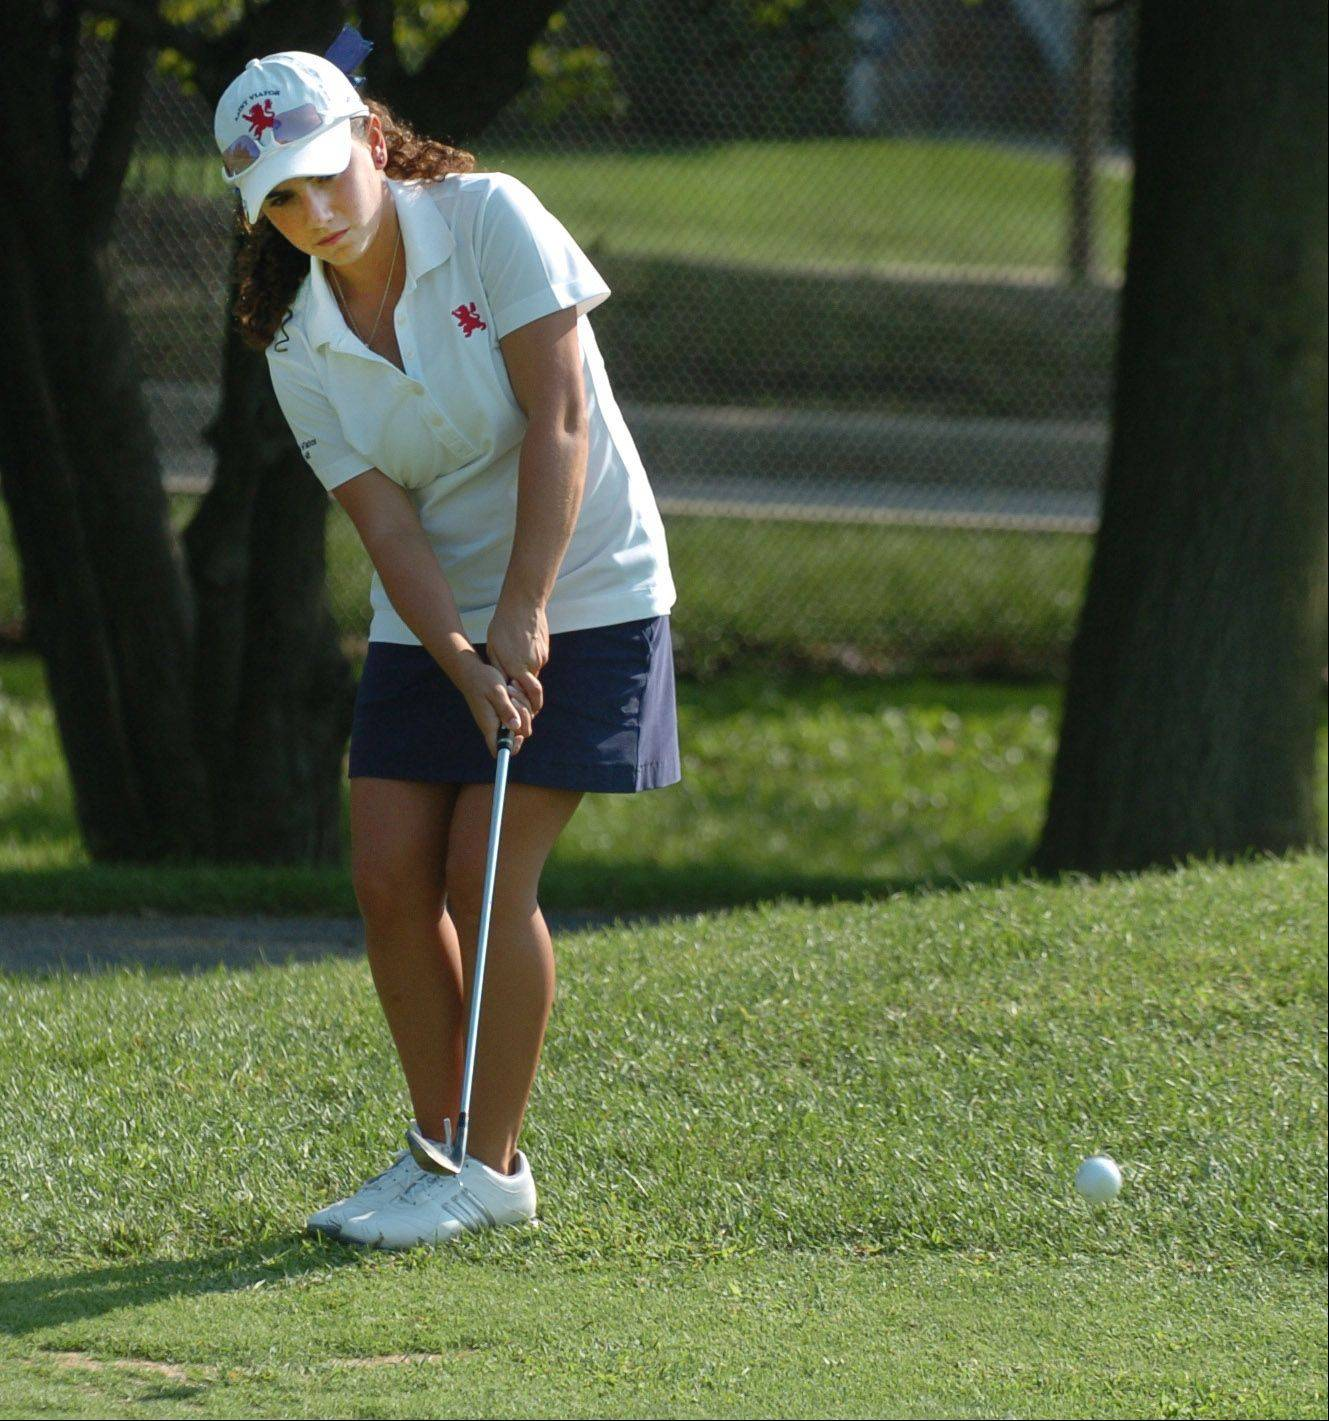 Dana Gattone of St. Viator has lined up a future in golf at Illinois.